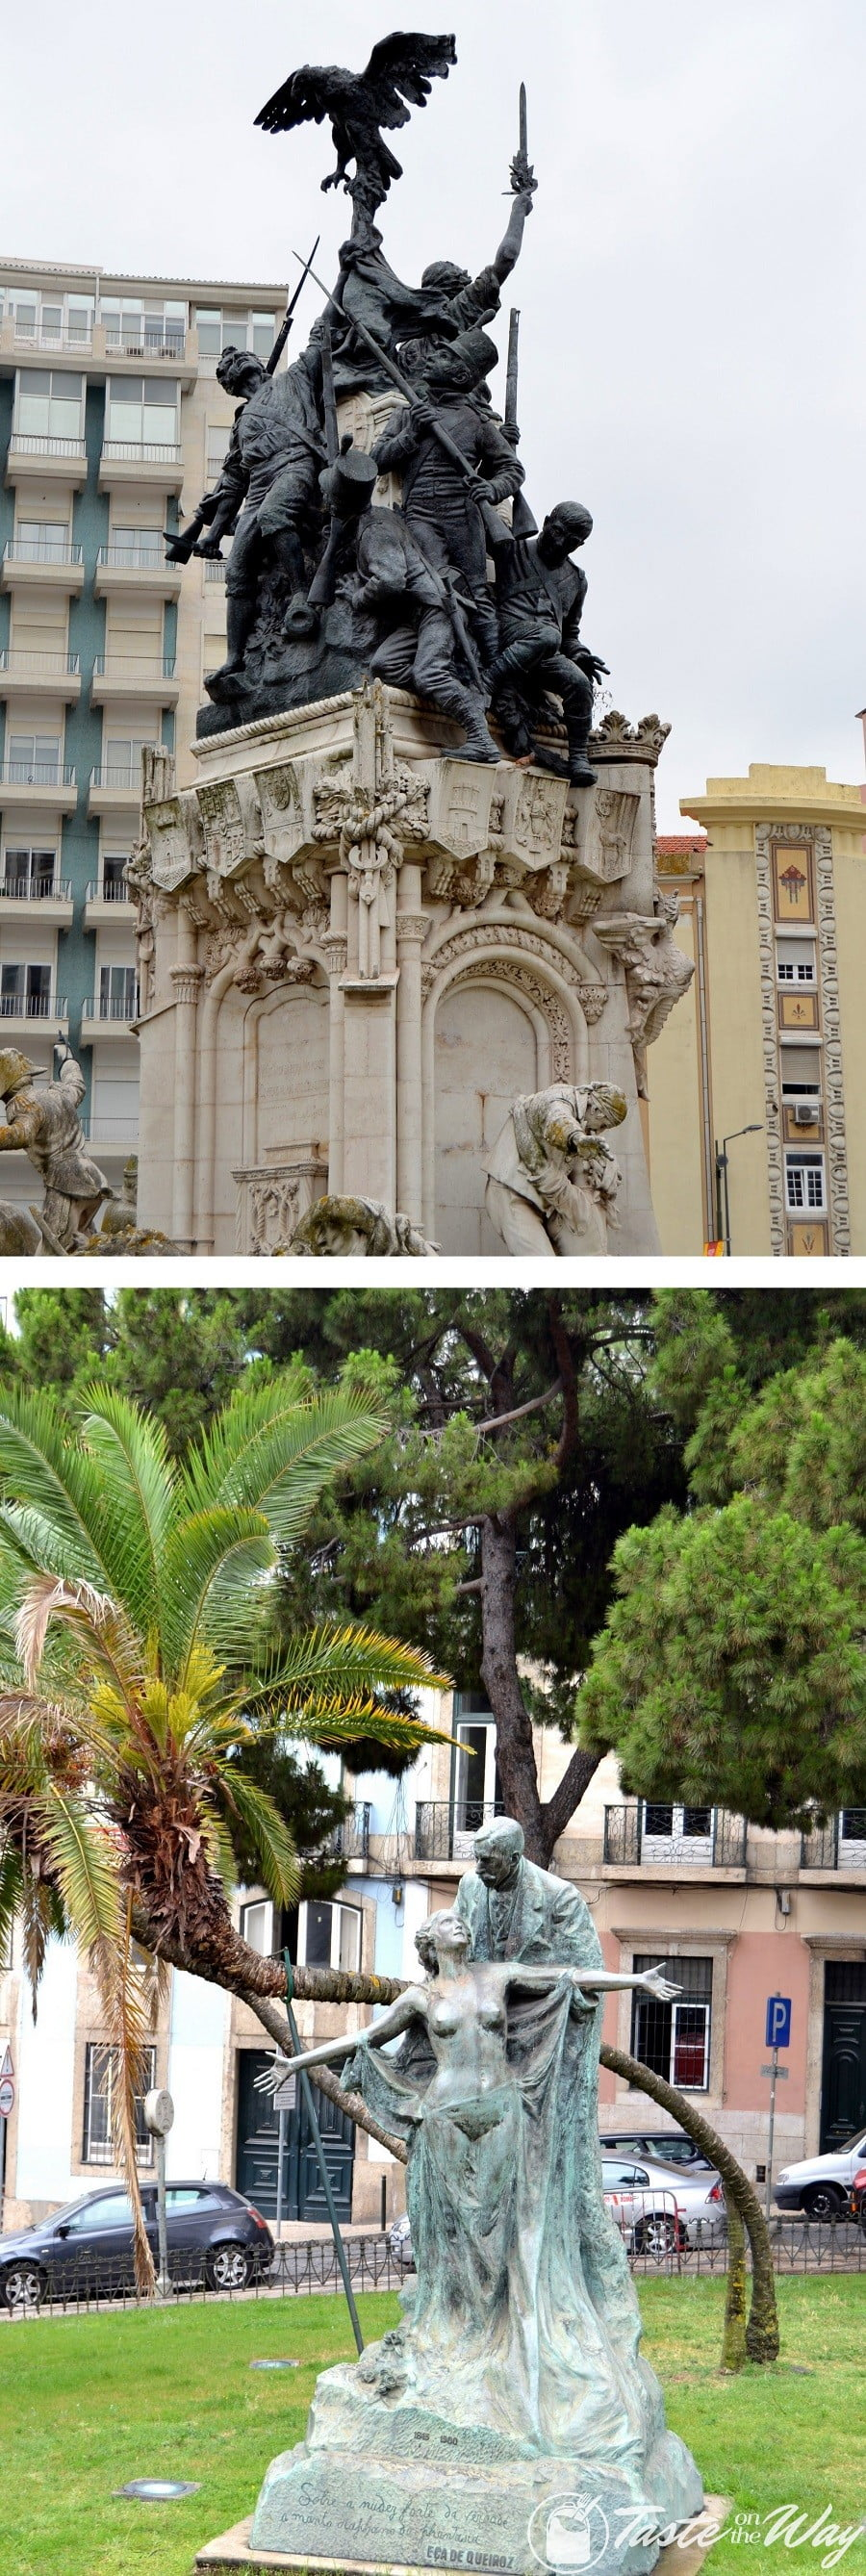 Top 15+ Best Things to Do in Lisbon, Portugal - One of the top fun #thingstodo in #Lisbon, #Portugal is finding the most elaborate statues in the city. Check out for more! #travel #photography @tasteontheway